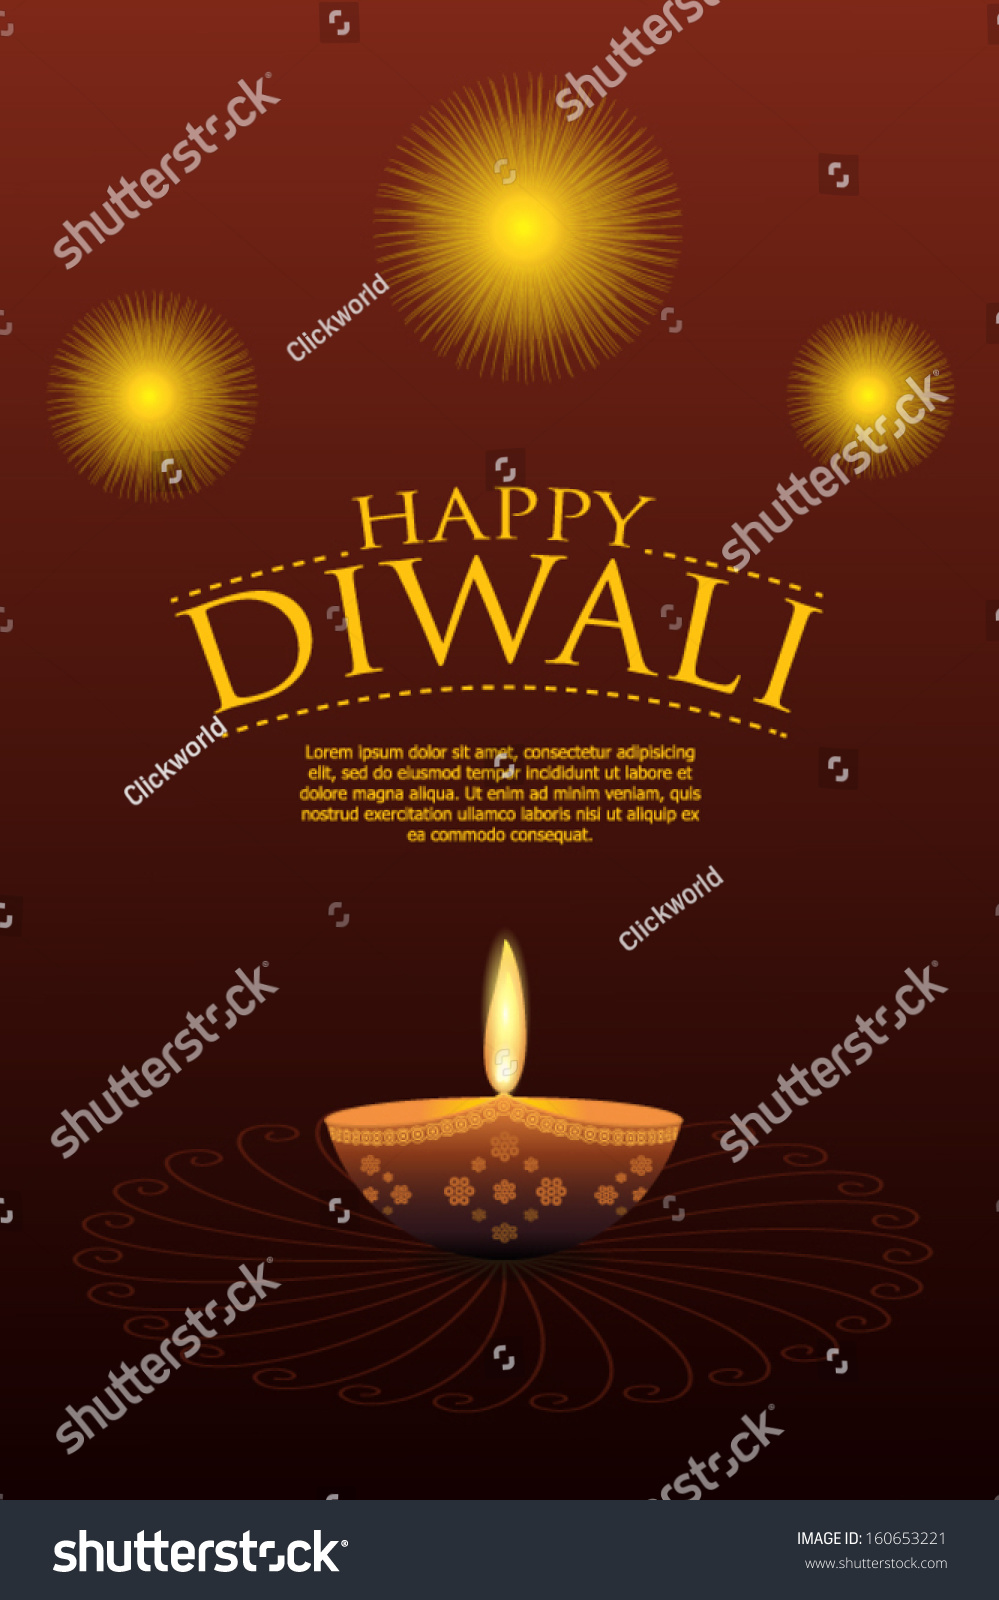 Happy diwali greeting card stock vector royalty free 160653221 happy diwali greeting card m4hsunfo